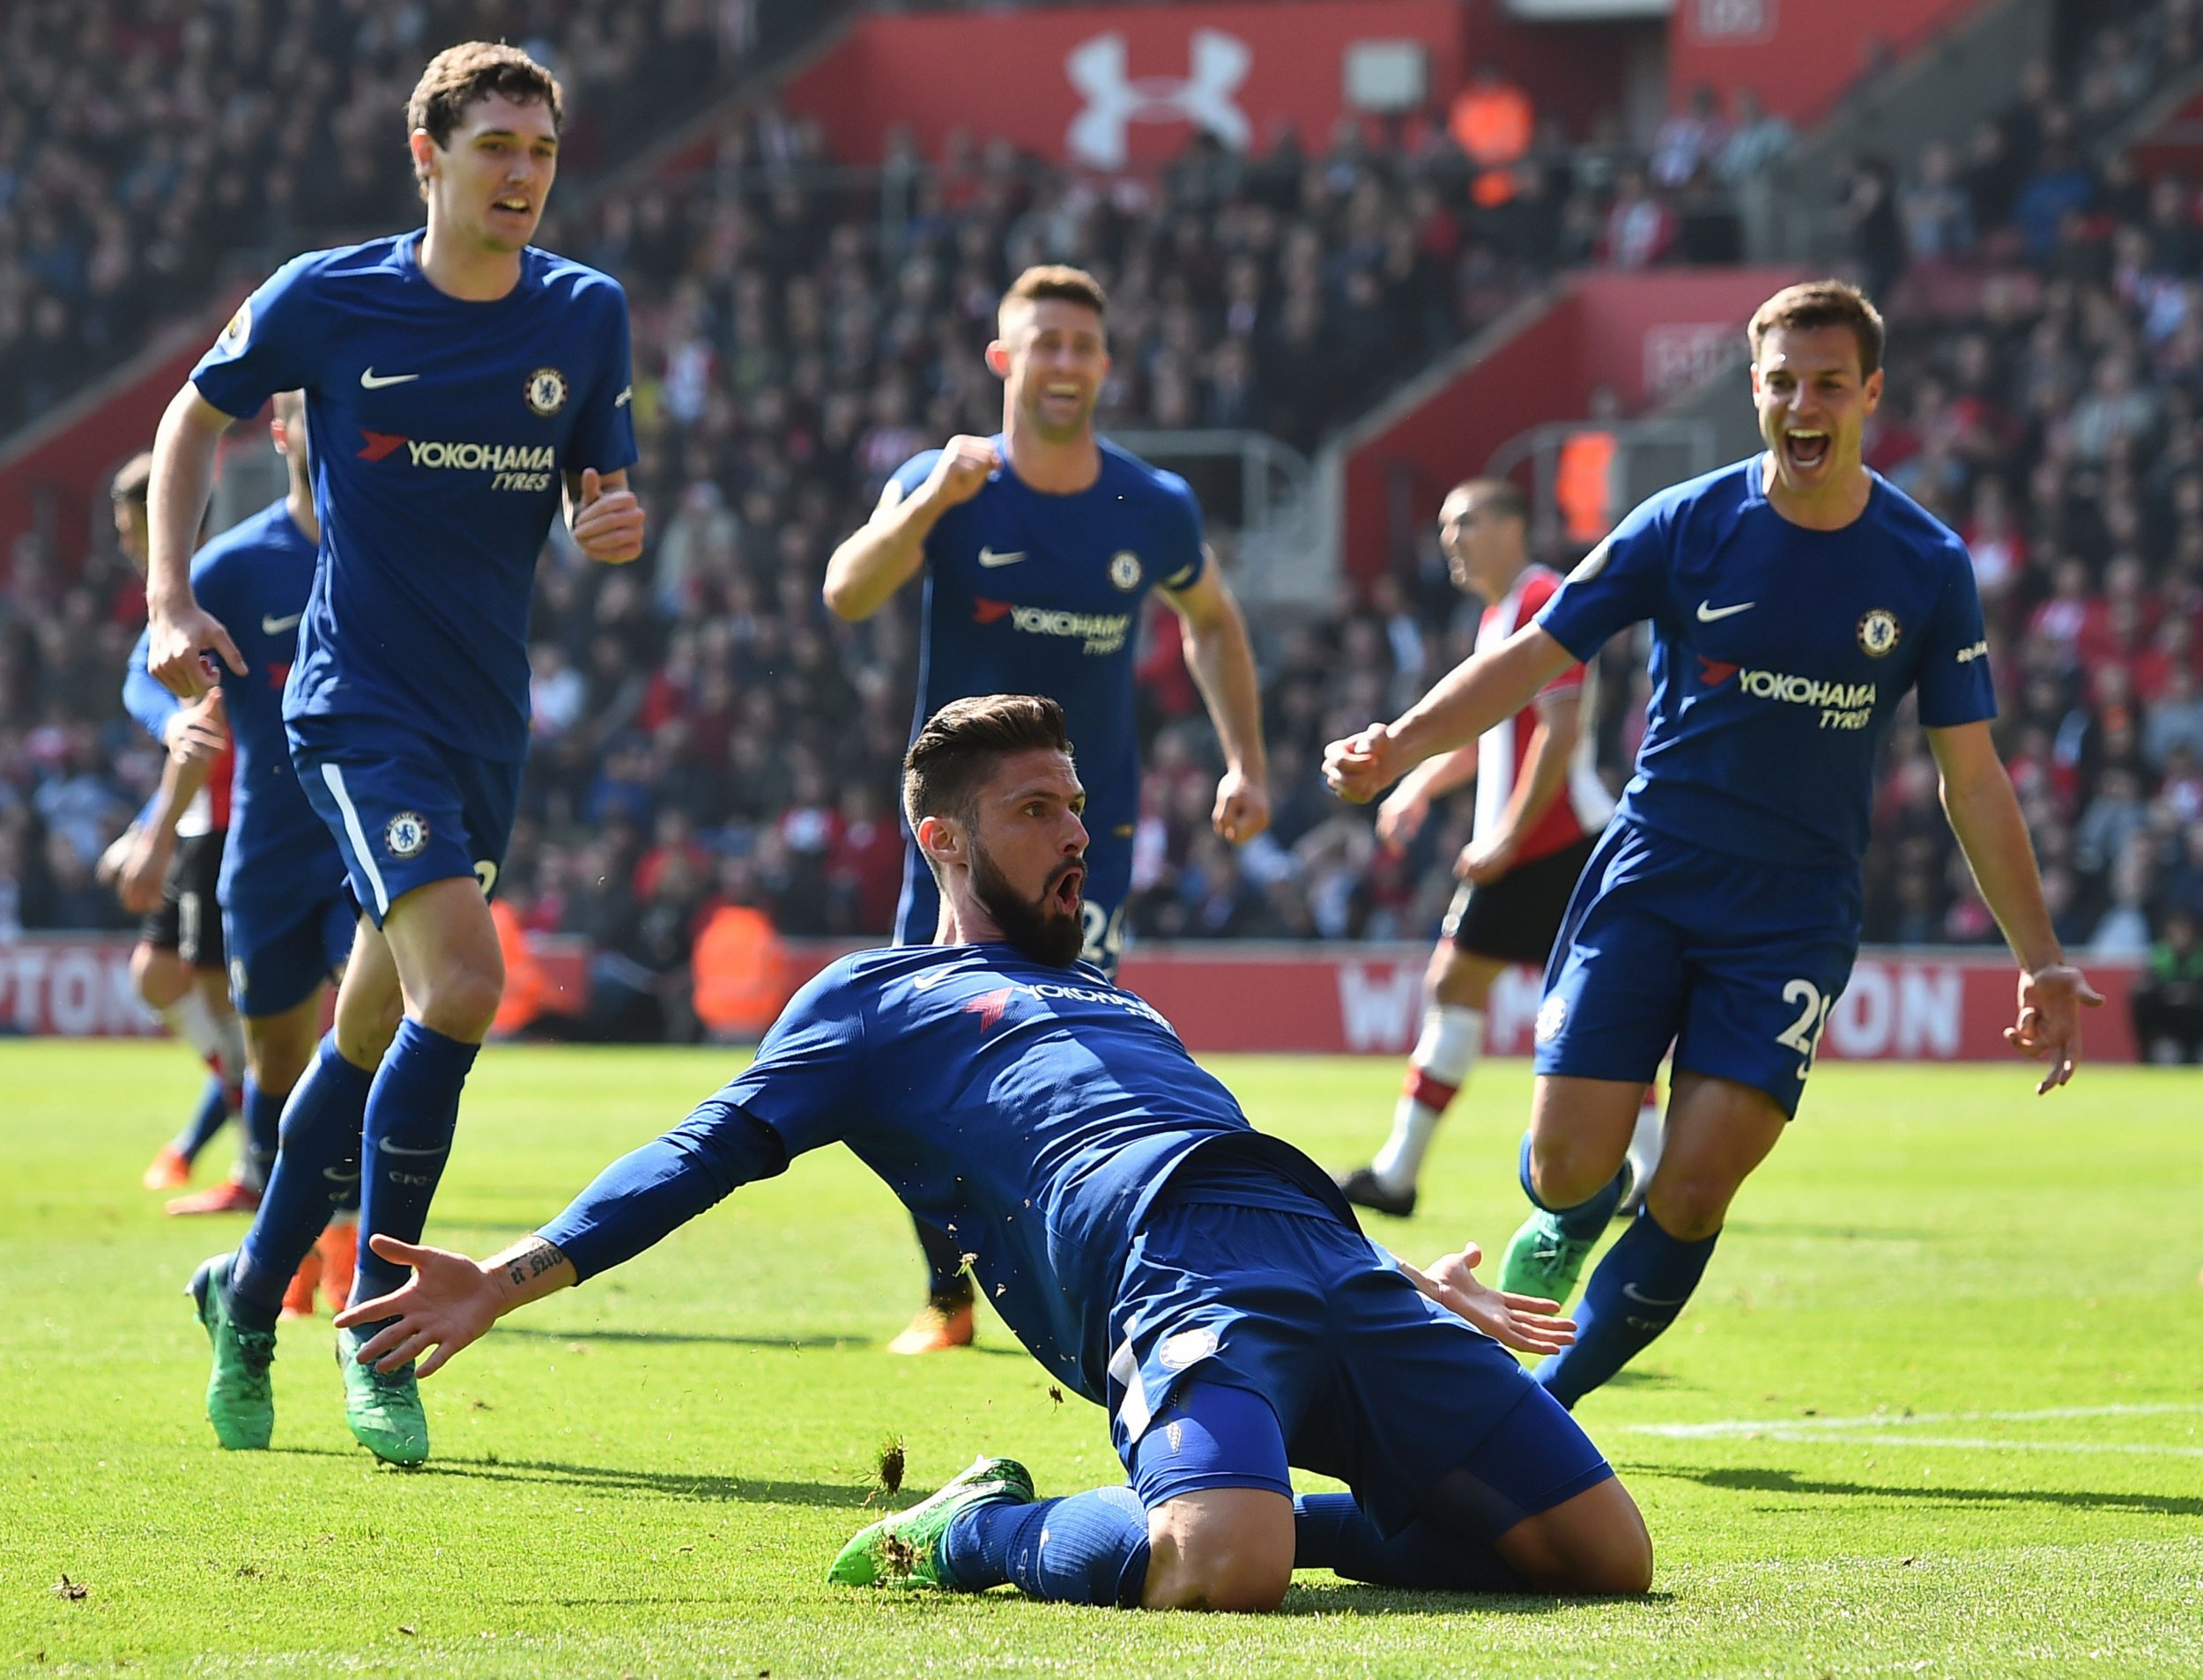 Chelsea's French attacker Olivier Giroud (C) celebrates scoring their third goal during the English Premier League football match between Southampton and Chelsea at St Mary's Stadium in Southampton, southern England on April 14, 2018. / AFP PHOTO / Glyn KIRK / RESTRICTED TO EDITORIAL USE. No use with unauthorized audio, video, data, fixture lists, club/league logos or 'live' services. Online in-match use limited to 75 images, no video emulation. No use in betting, games or single club/league/player publications. / GLYN KIRK/AFP/Getty Images